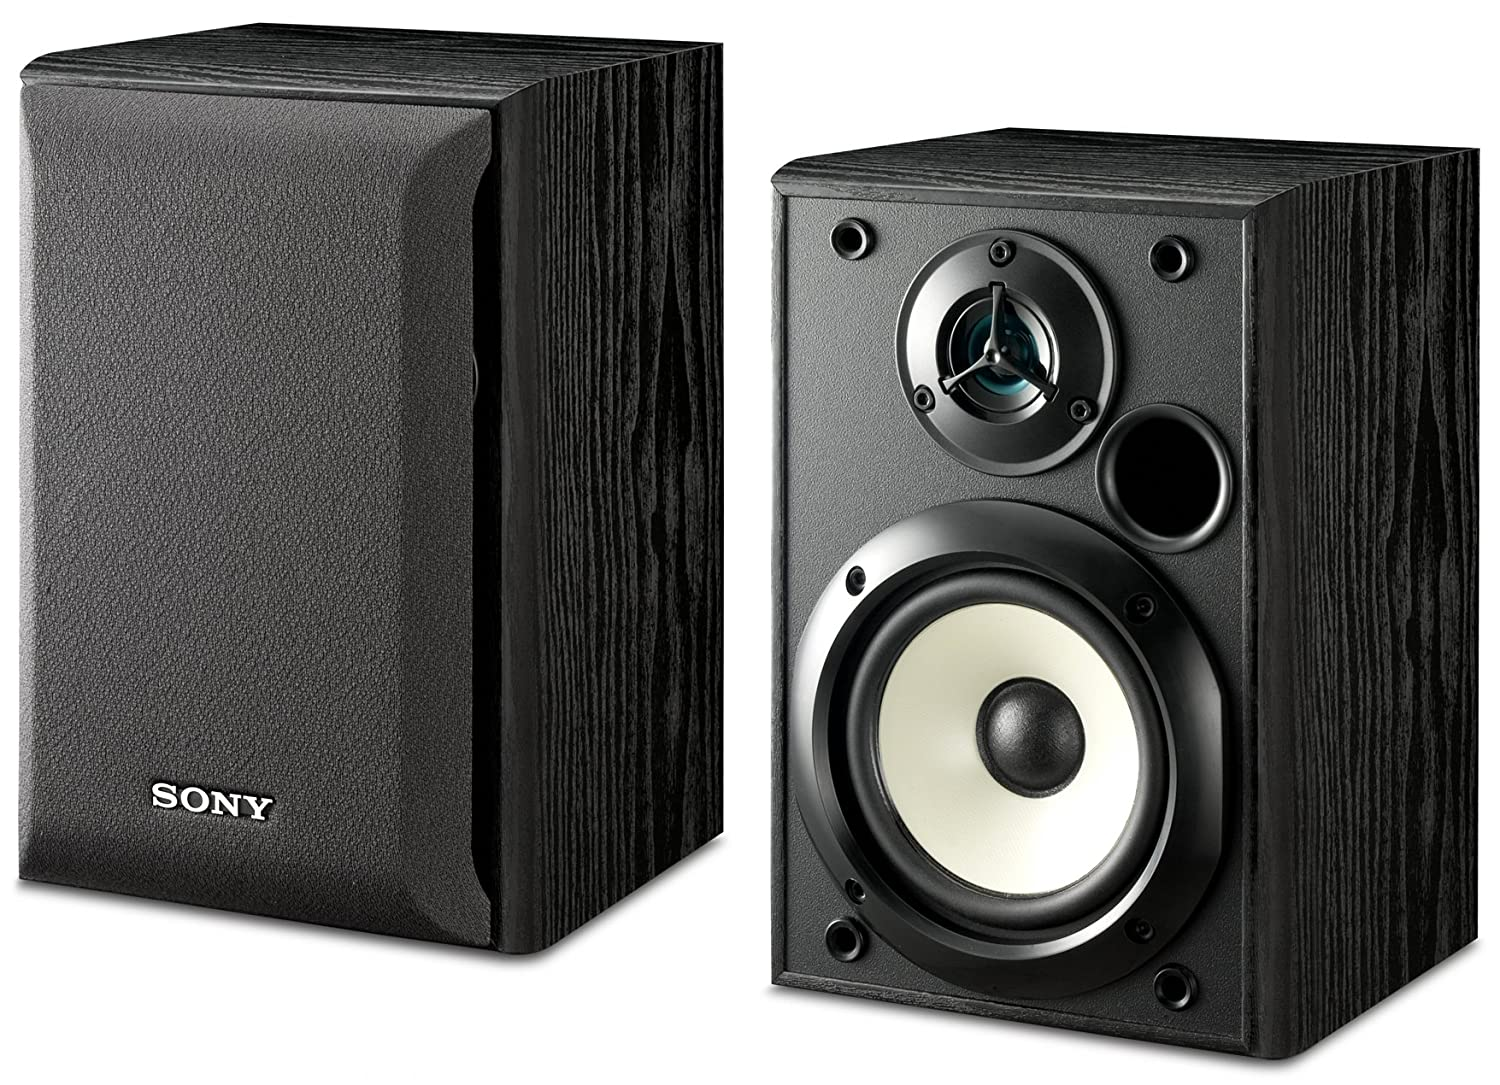 Sony Ss B1000 5 1 4 Inch Bookshelf Speakers Pair Home Stereo System Wiring Diagram Ford F 150 Audio Theater